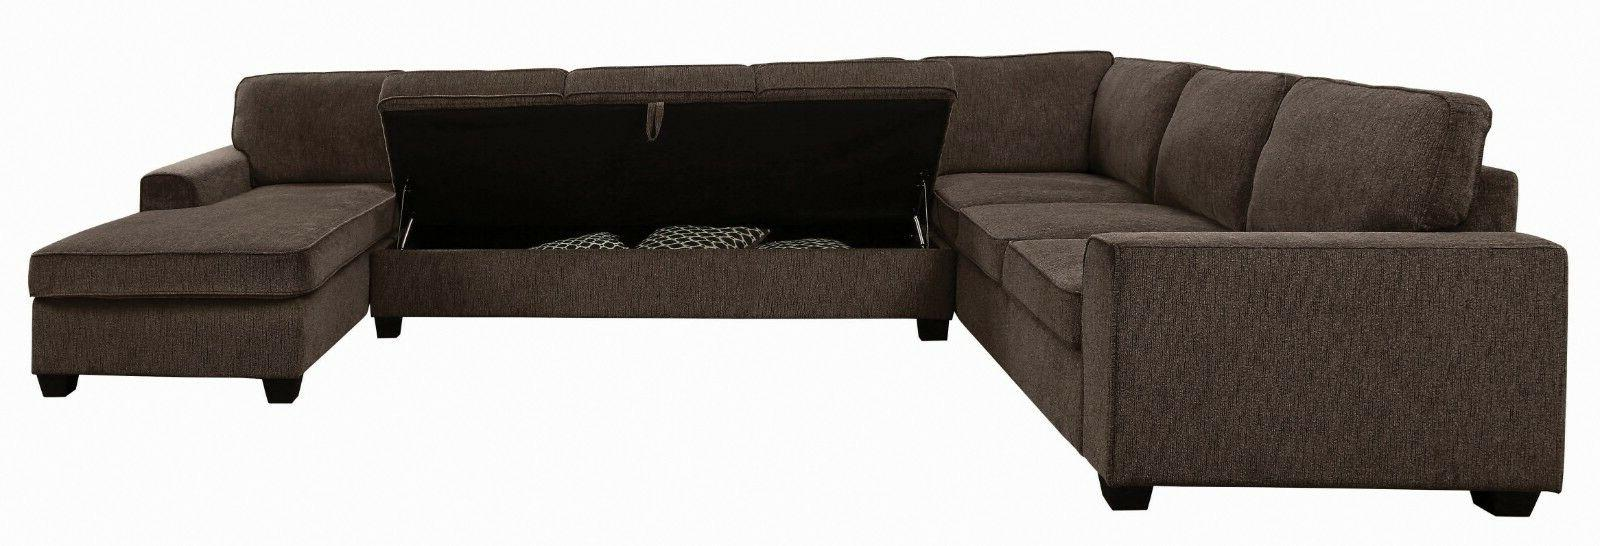 Transitional 3-Piece Fabric with Storage Brown